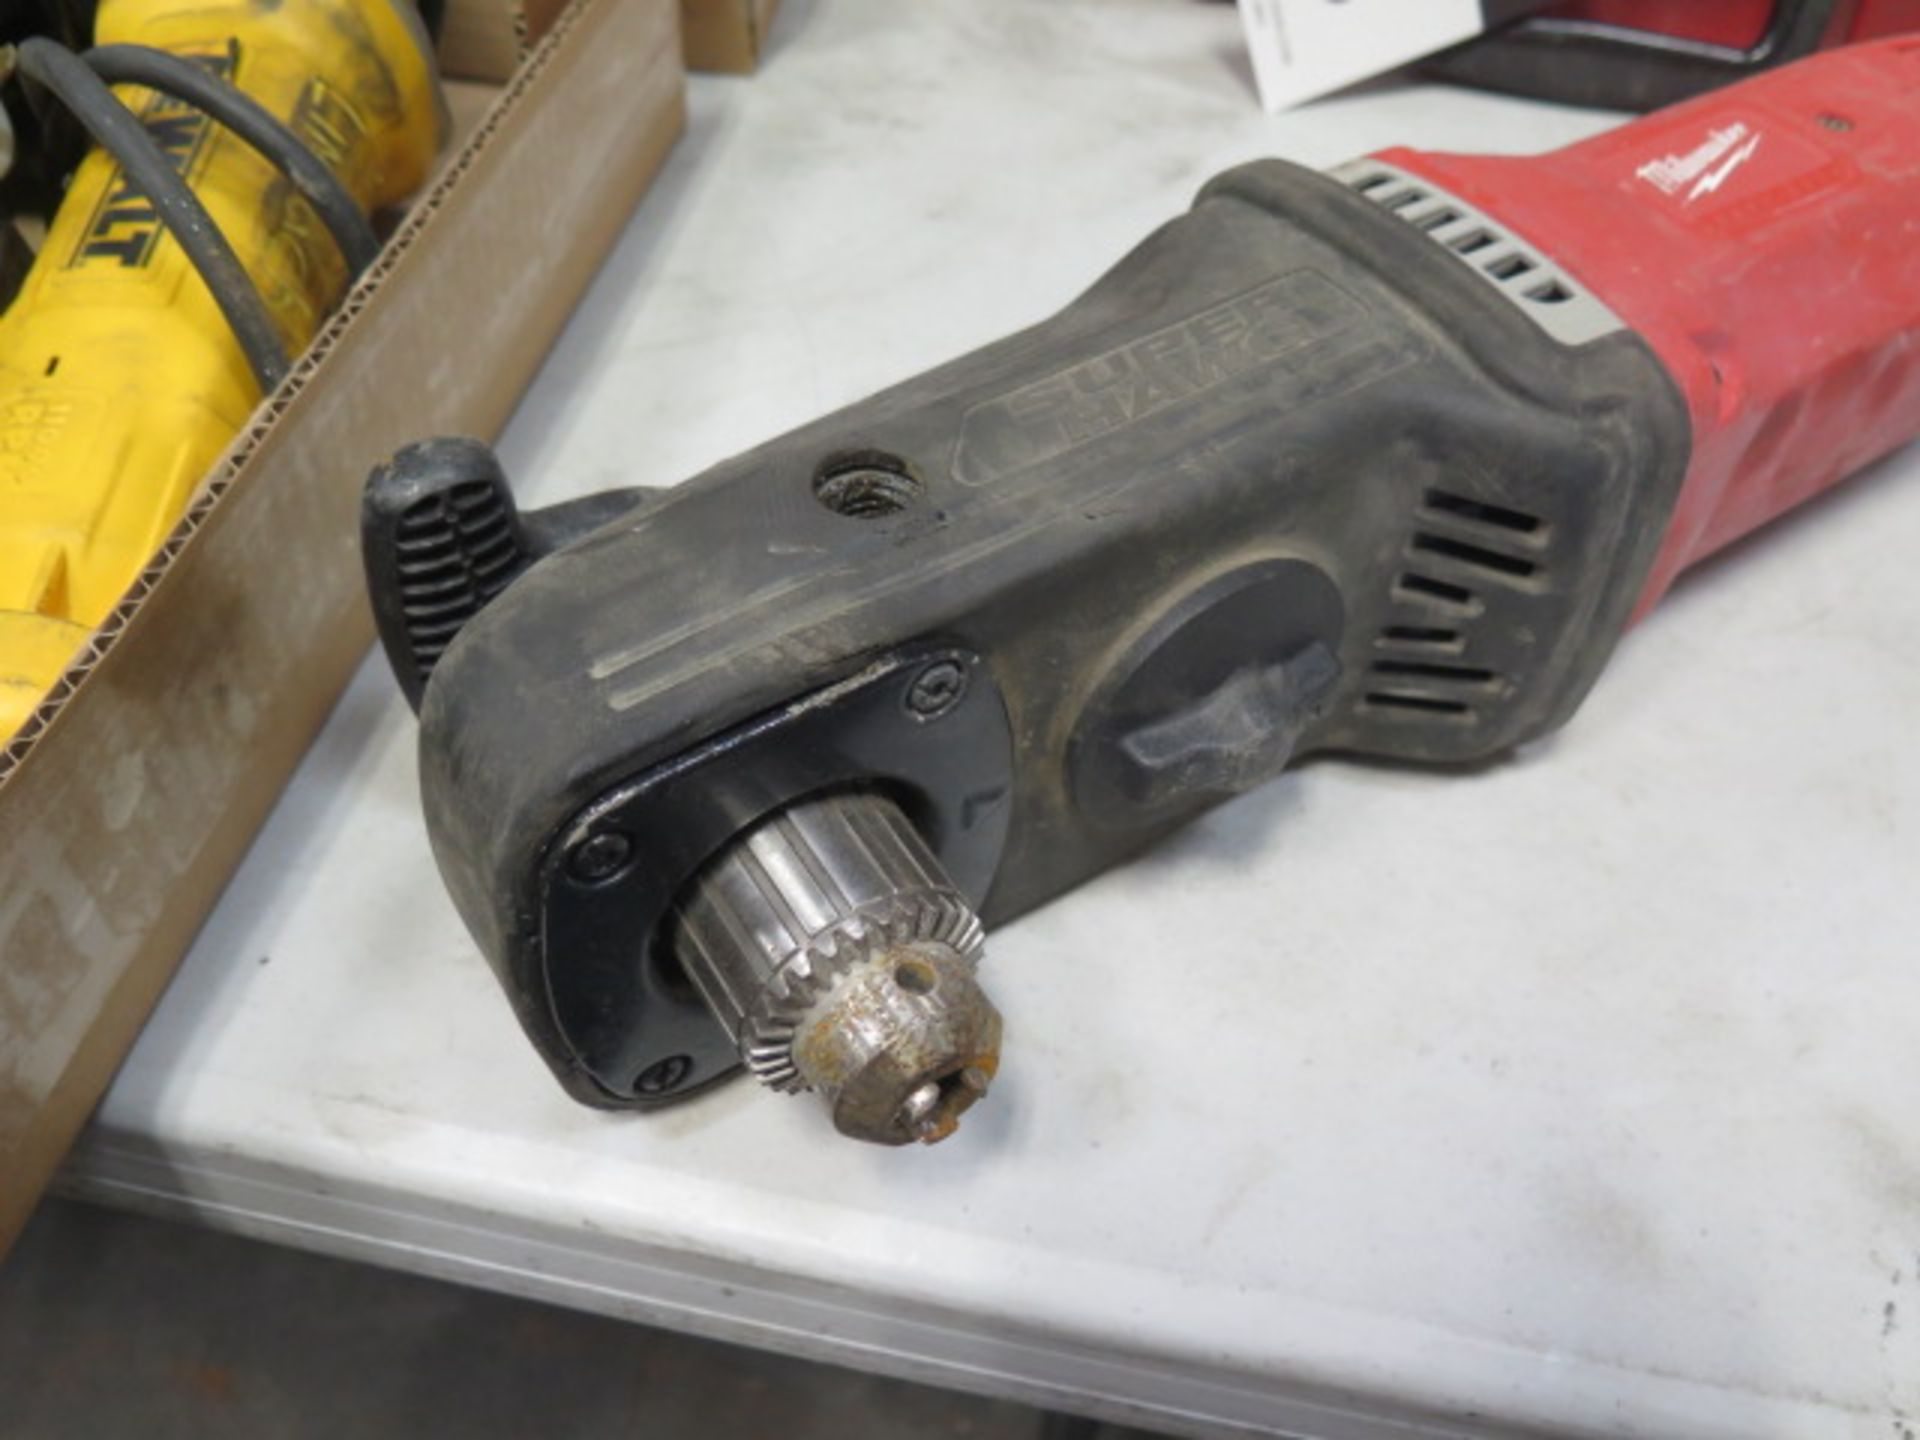 Milwaukee Angle Drill (SOLD AS-IS - NO WARRANTY) - Image 2 of 5